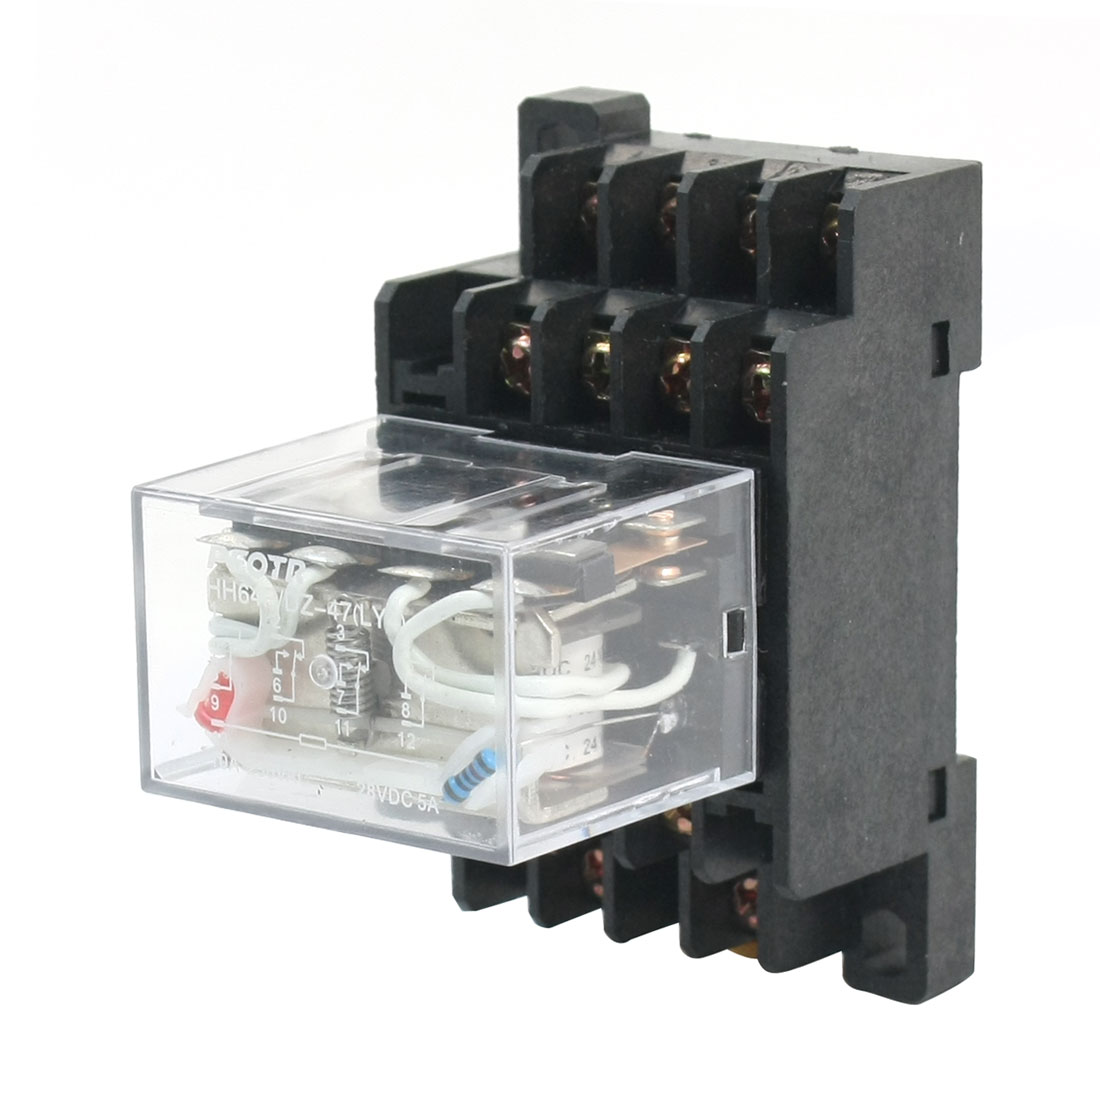 HH64P/DZ47 DC 24V Coil Voltage Red Indicator Light 14-Pin 4PDT 4NO 4NC Plug-in General Purpose Power Relay w 35mm DIN Rail Mount Socket